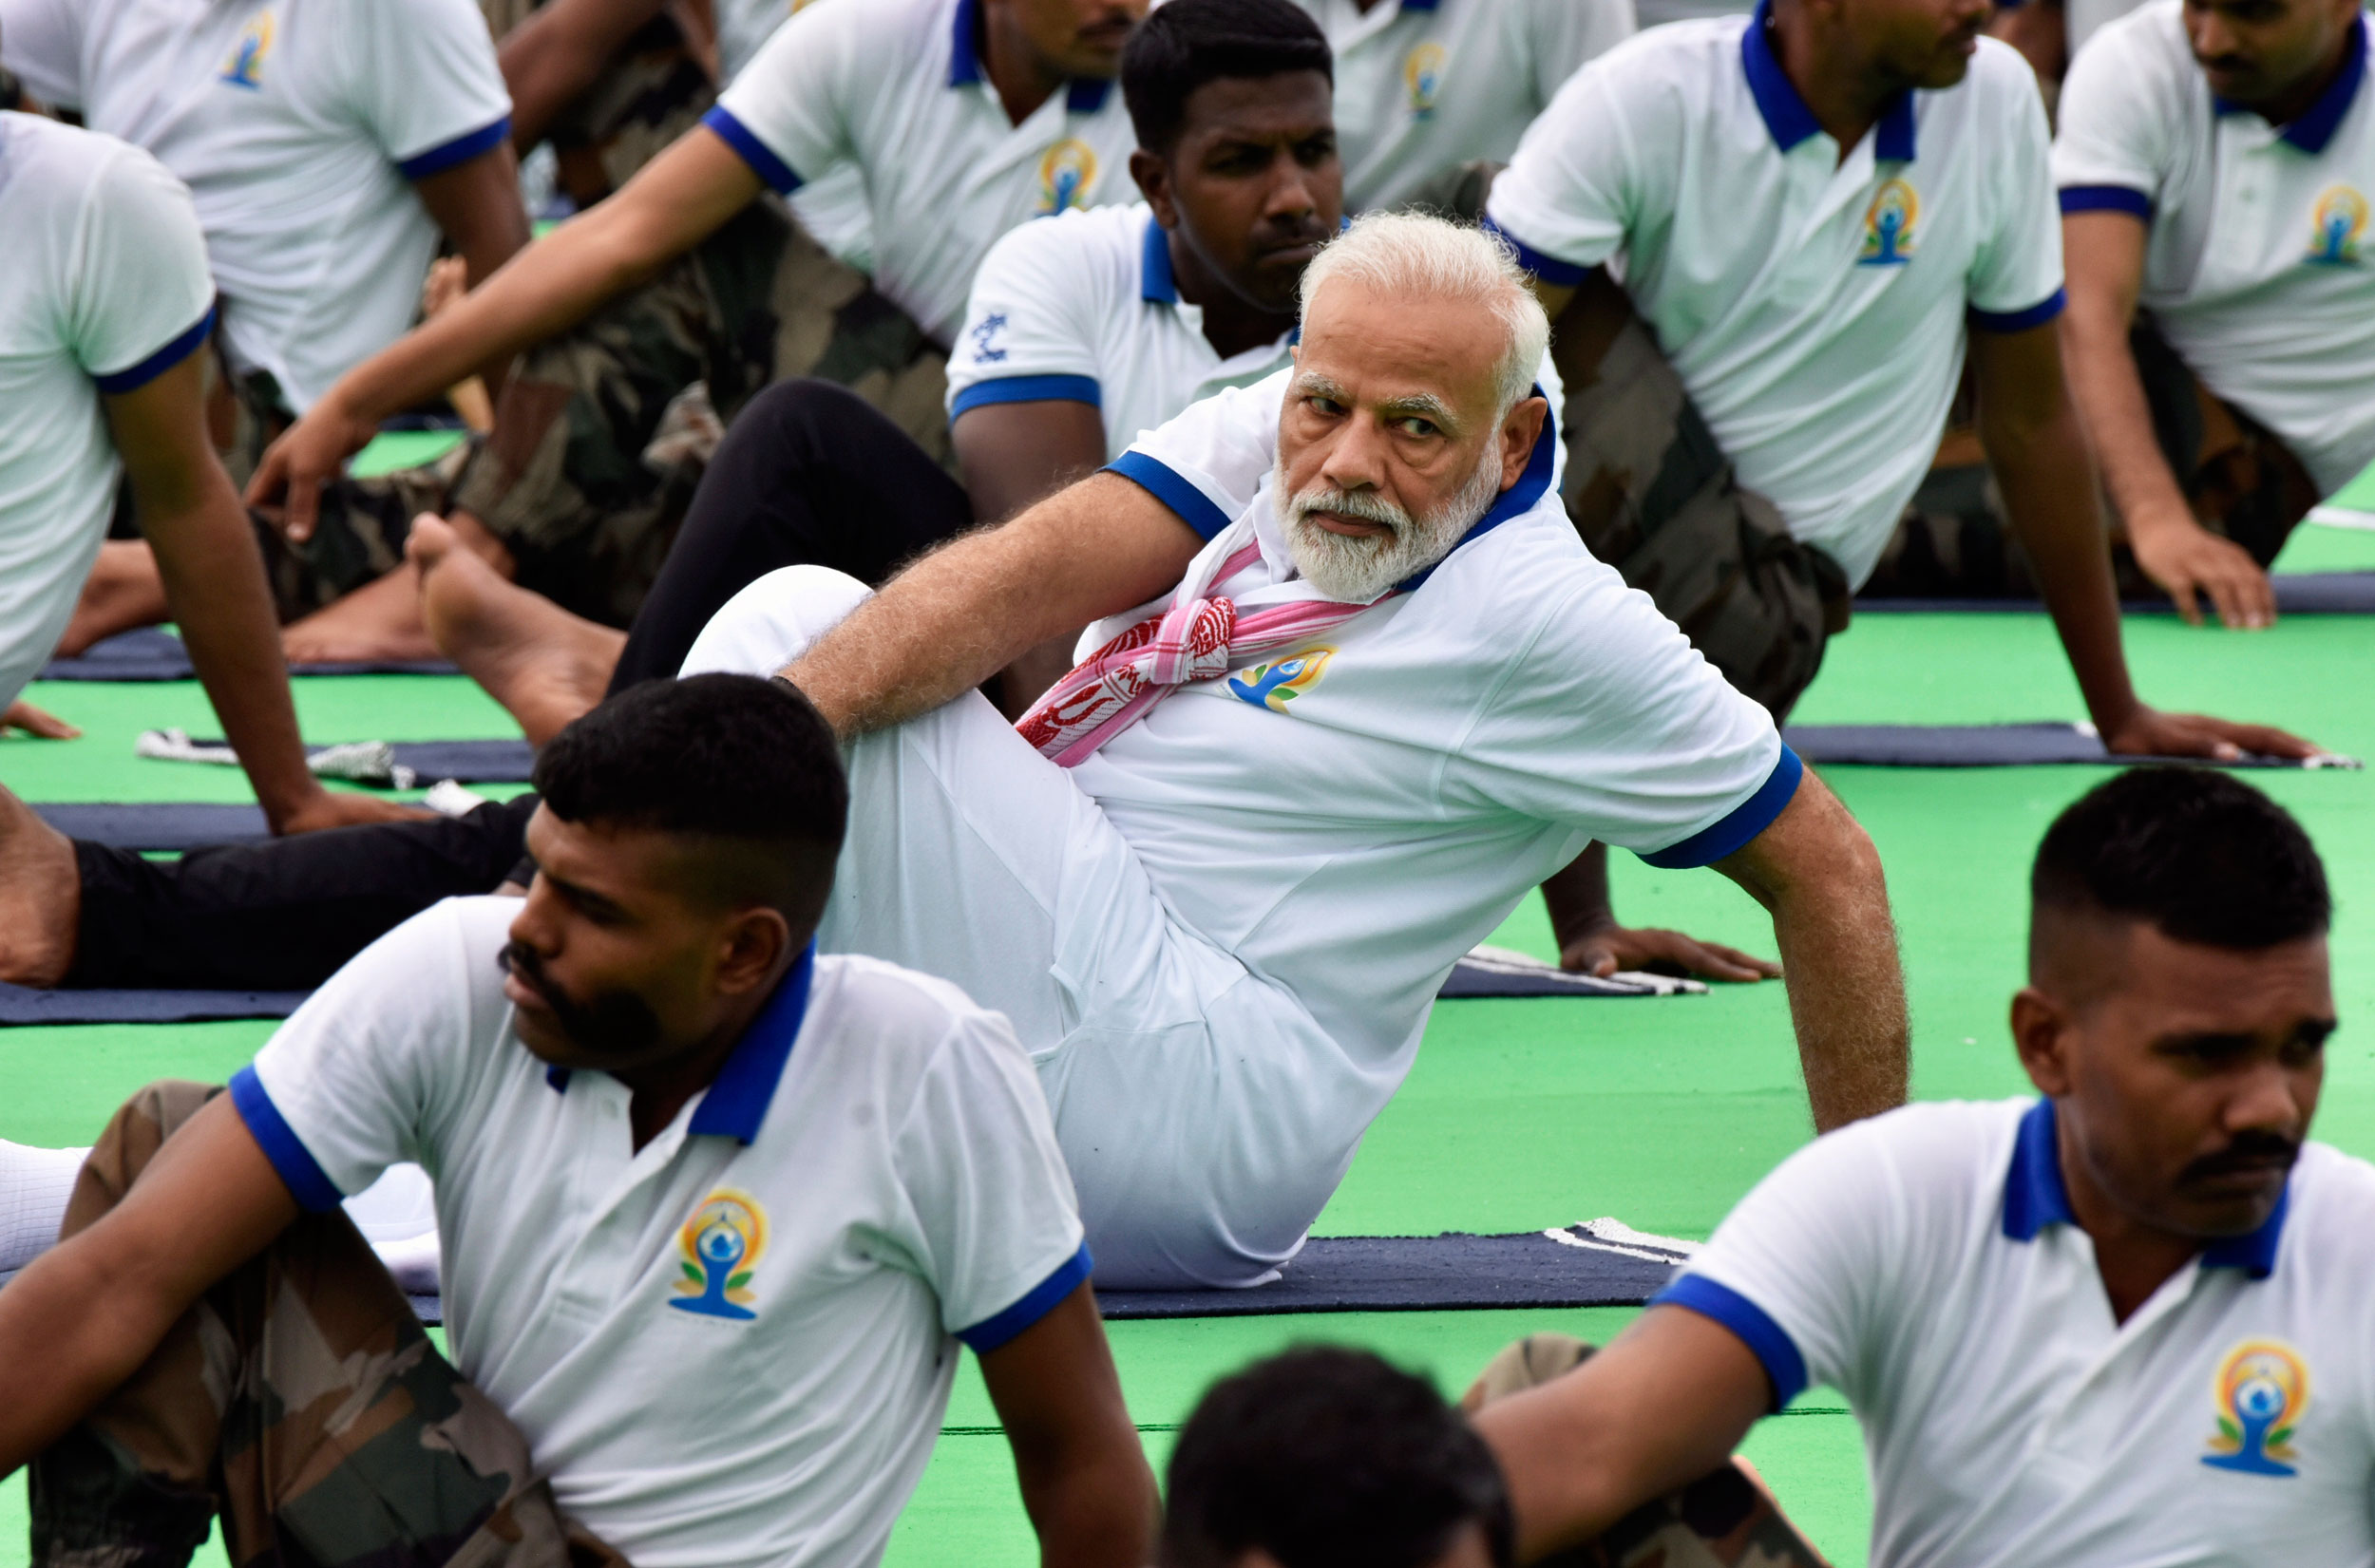 Prime Minister Narendra Modi during an event to mark International Yoga Day in Ranchi on June 21 this year.